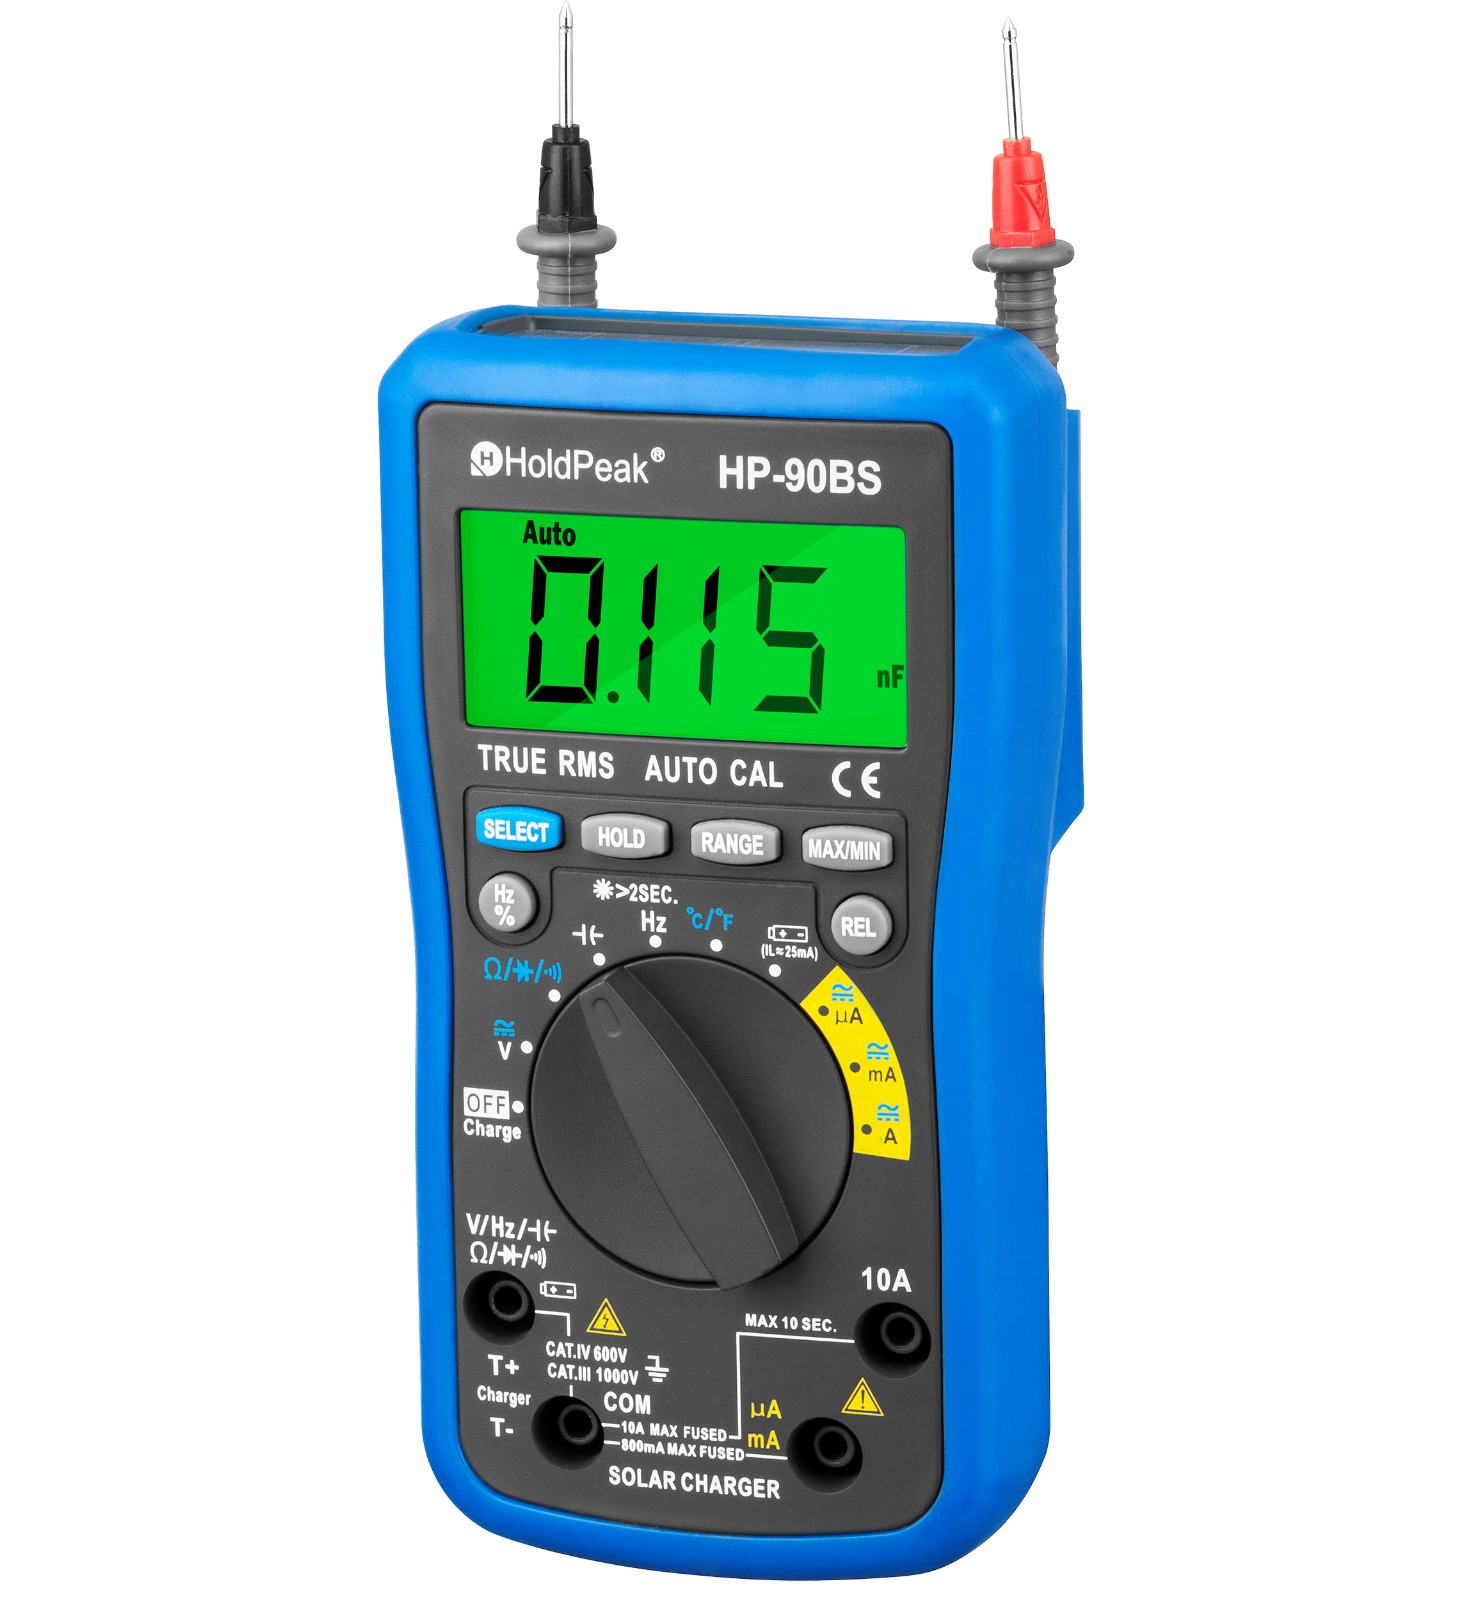 product-HoldPeak-professional digital multimeter,auto range select,True RMS, solar charge and USB ch